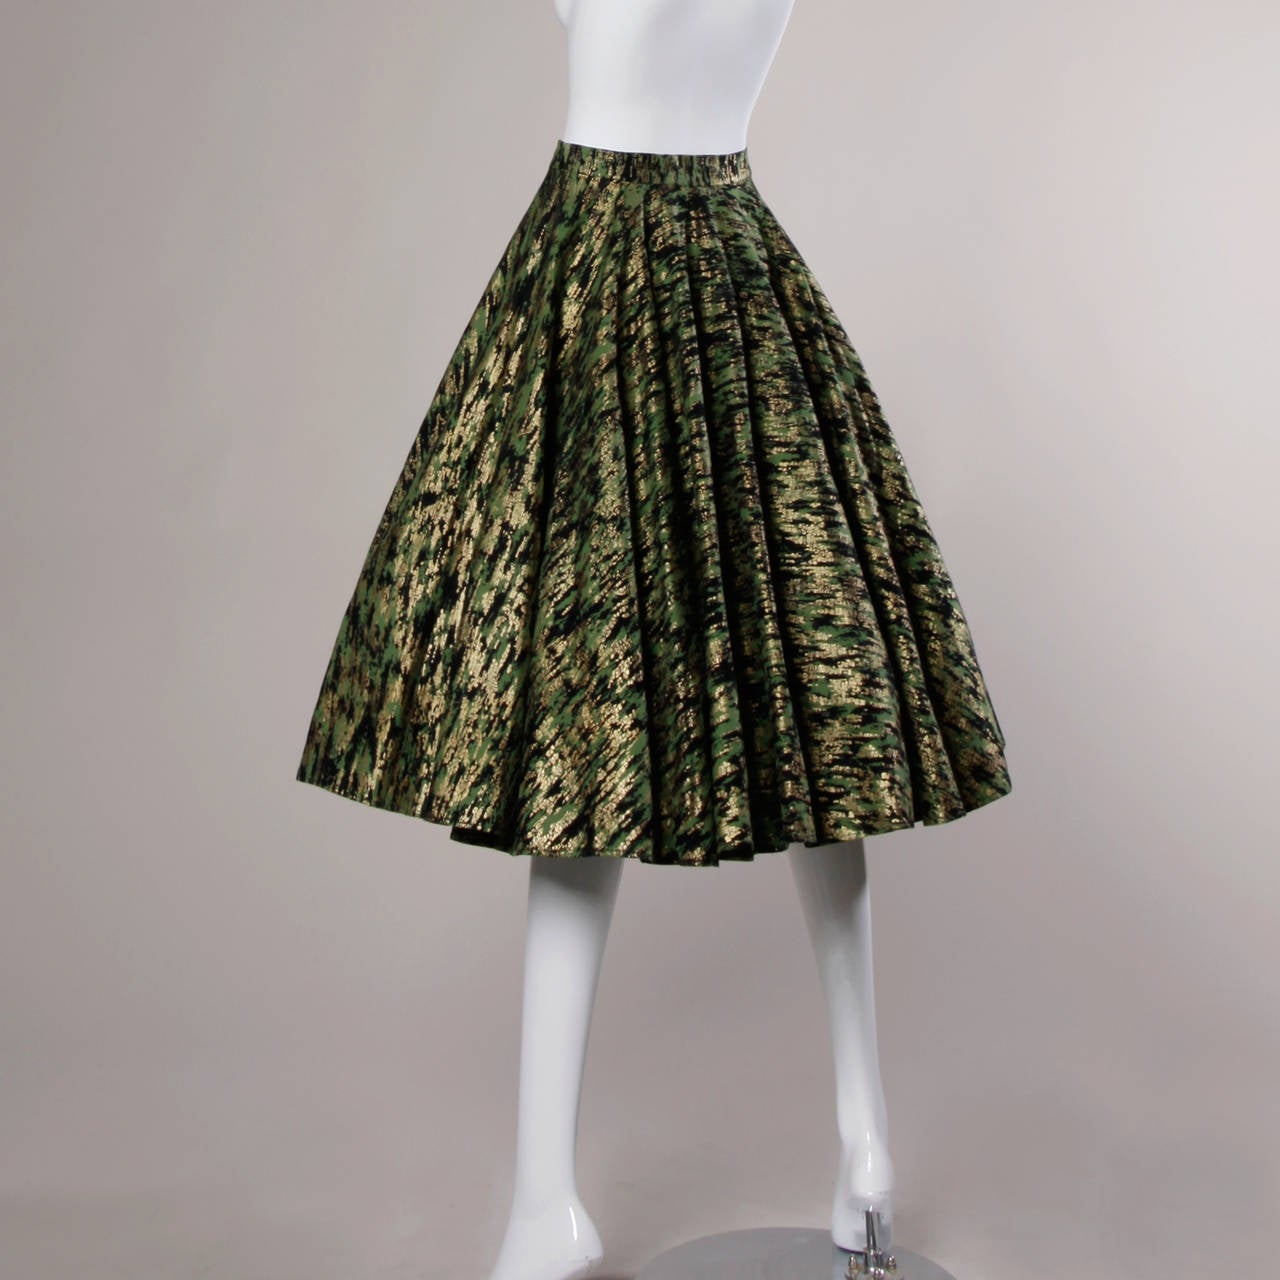 1950s Vintage Metallic Gold + Green Hand Screenprint Swing Skirt 3